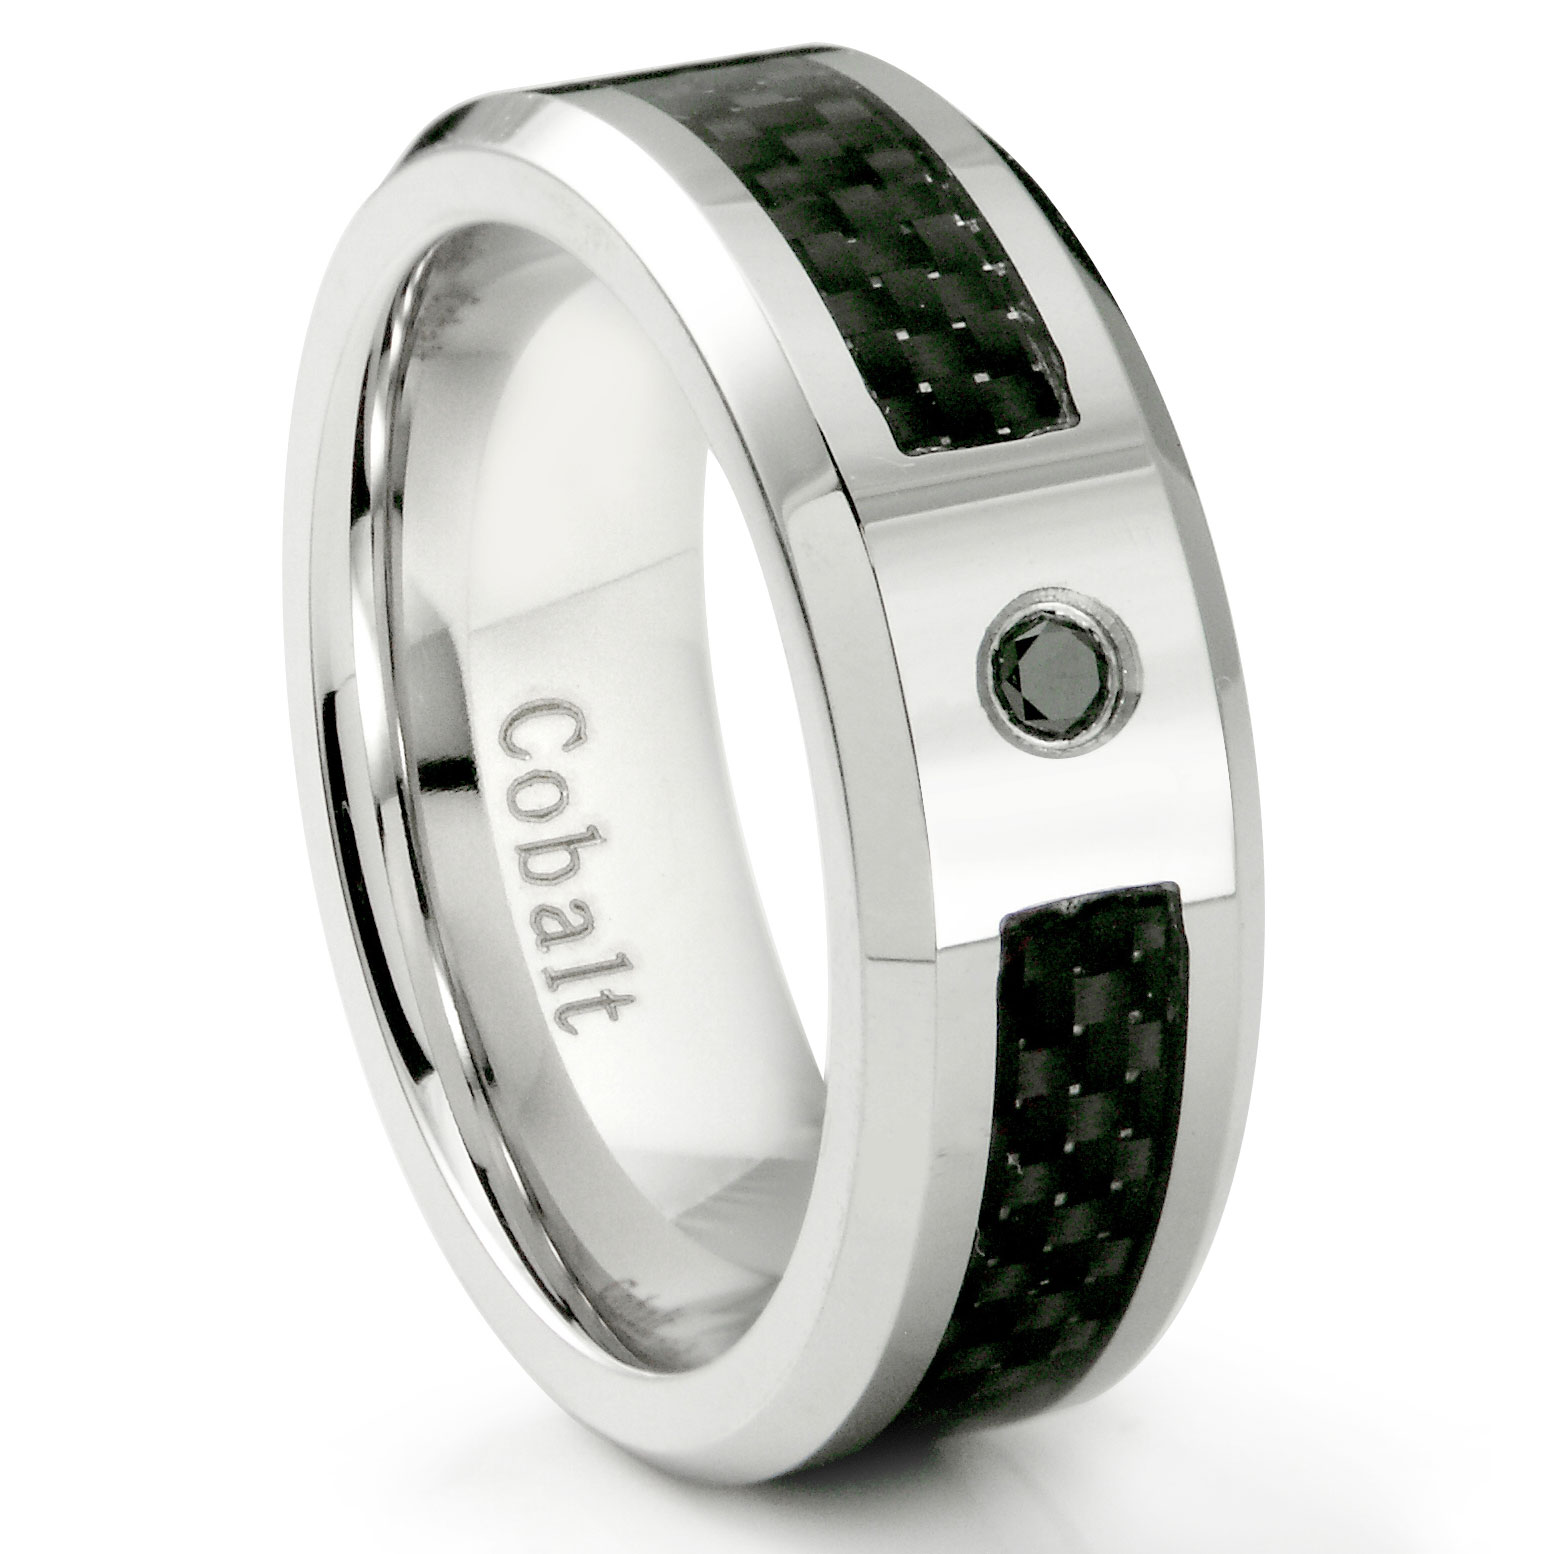 in rings cobalt wedding chrome view black for quick men hammered ring p finish designer